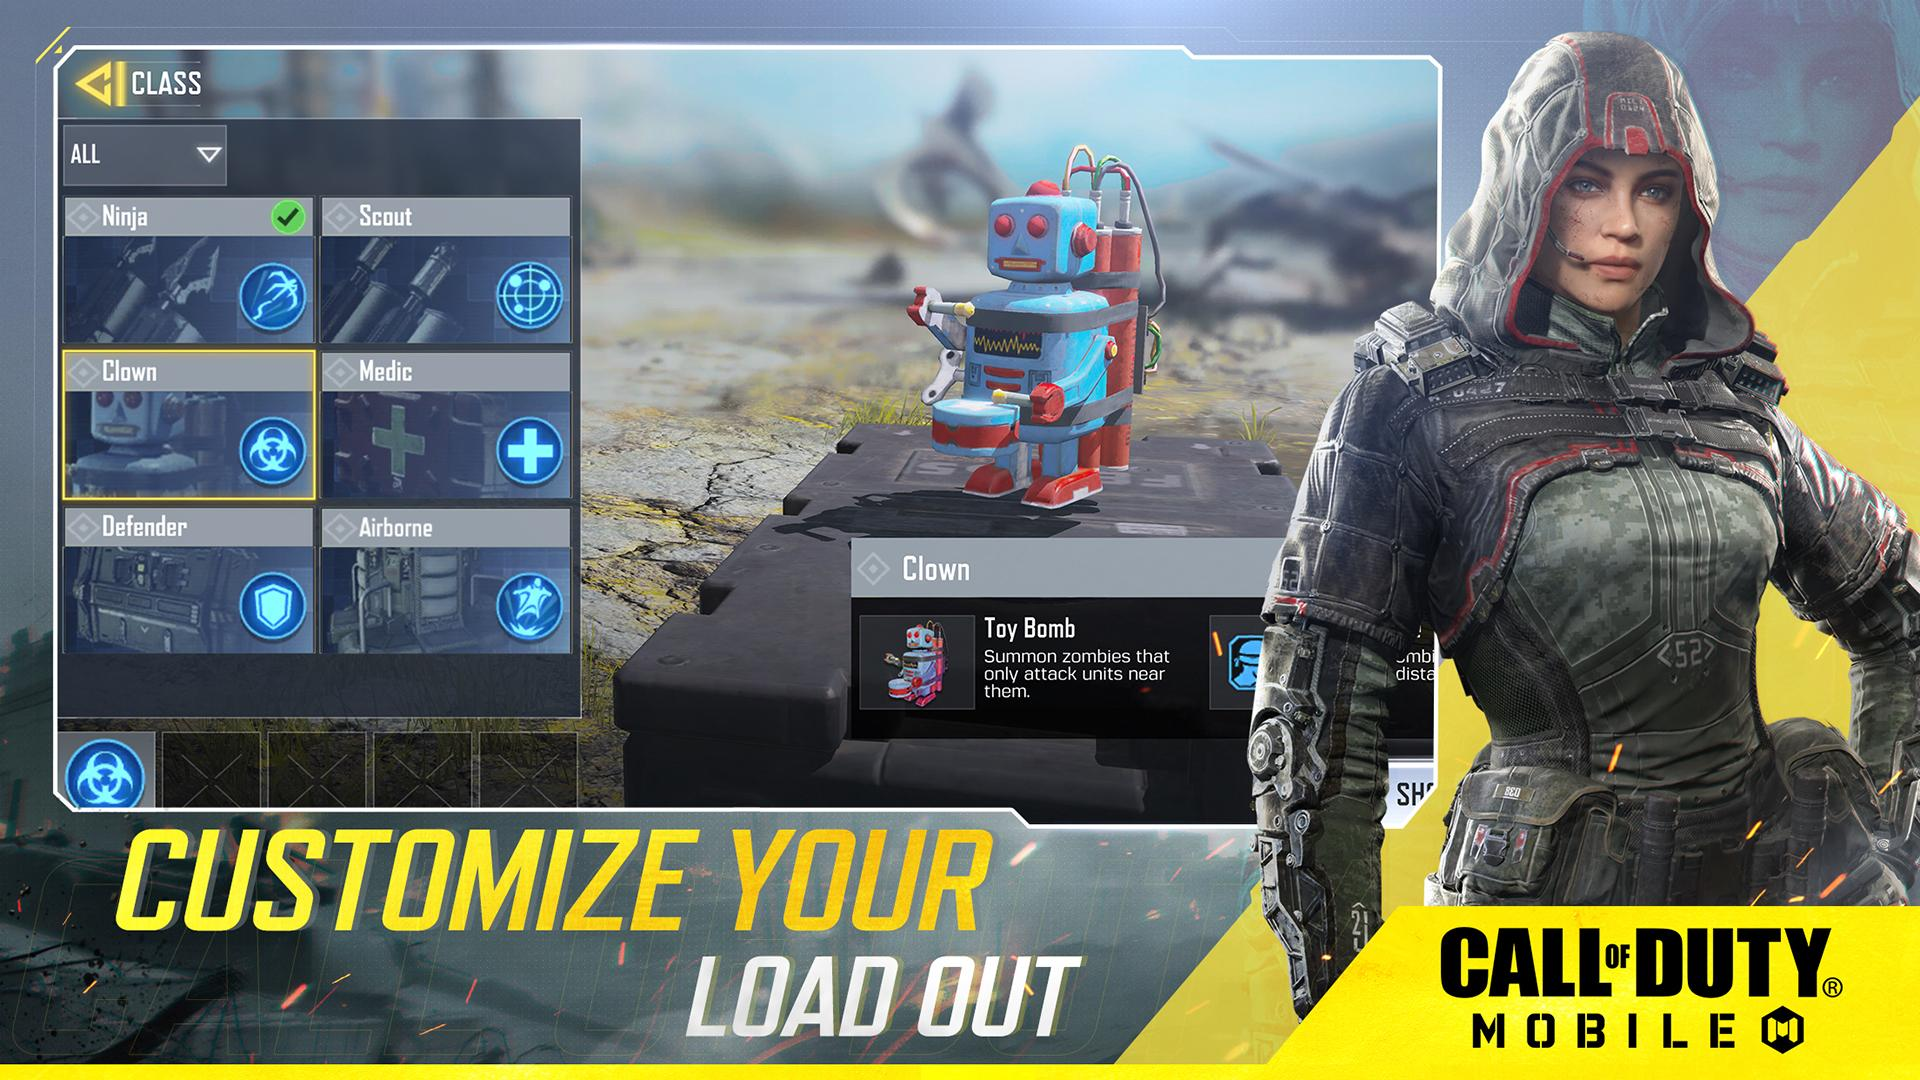 Call Of Duty Mobile How To Change Your Nickname Without Losing